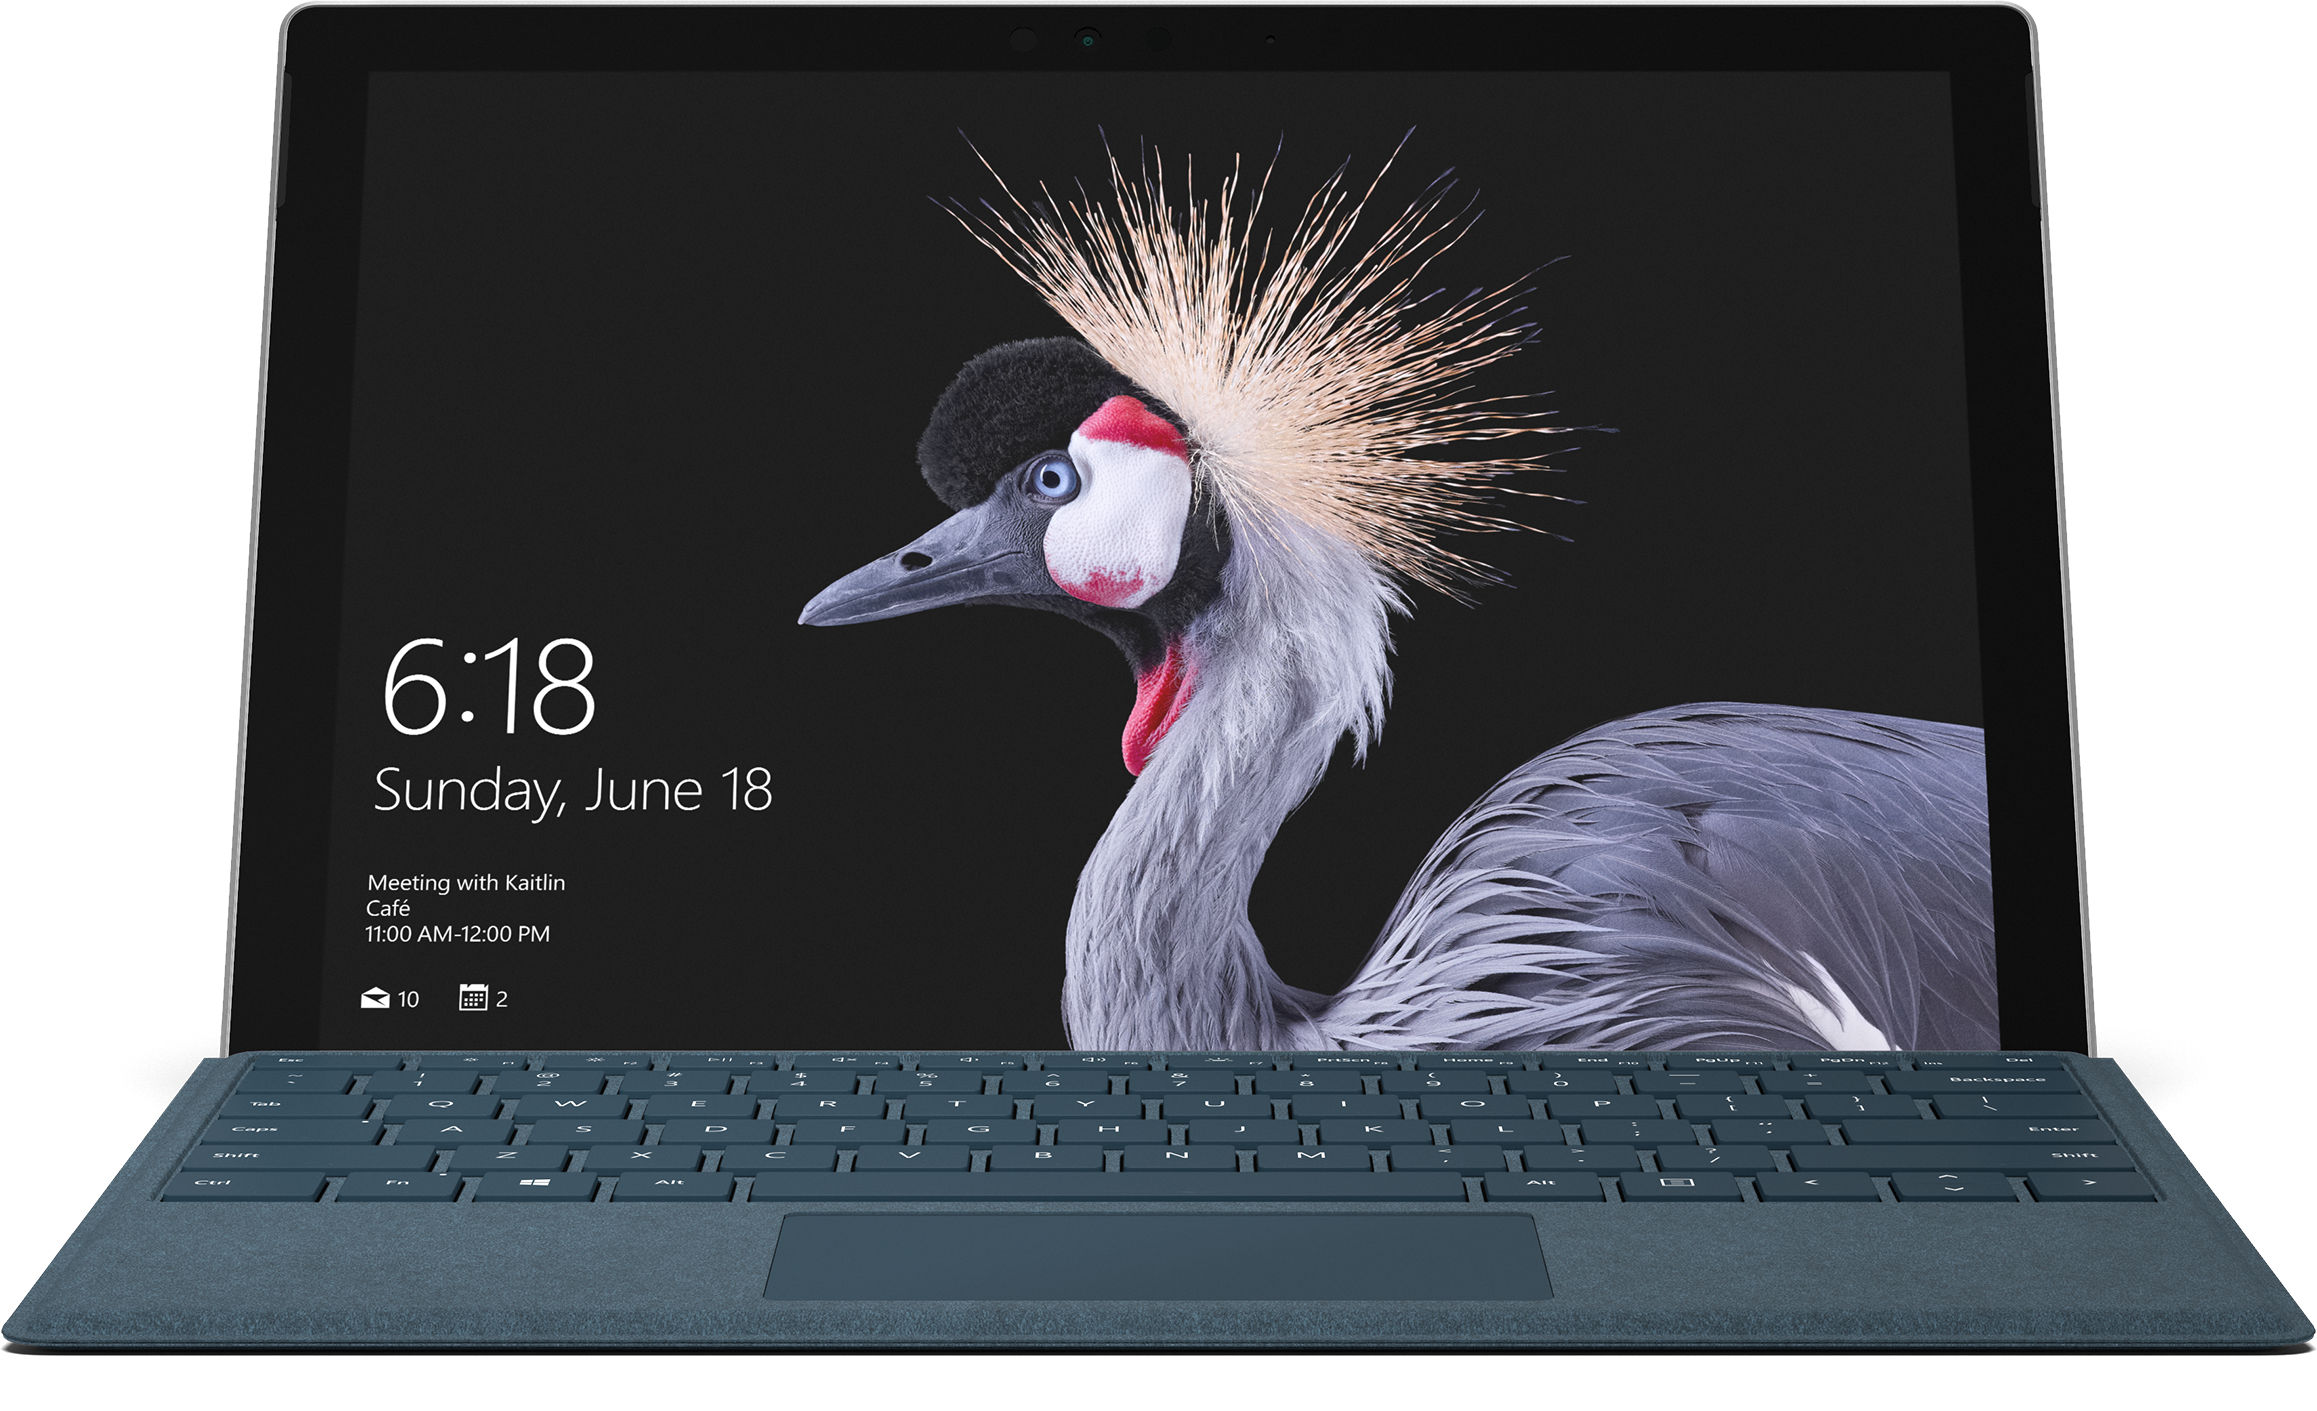 RE1I9Uz?ver=4905 - Surface Pro (5th Gen) Intel Core m3 / 128GB SSD / 4GB RAM